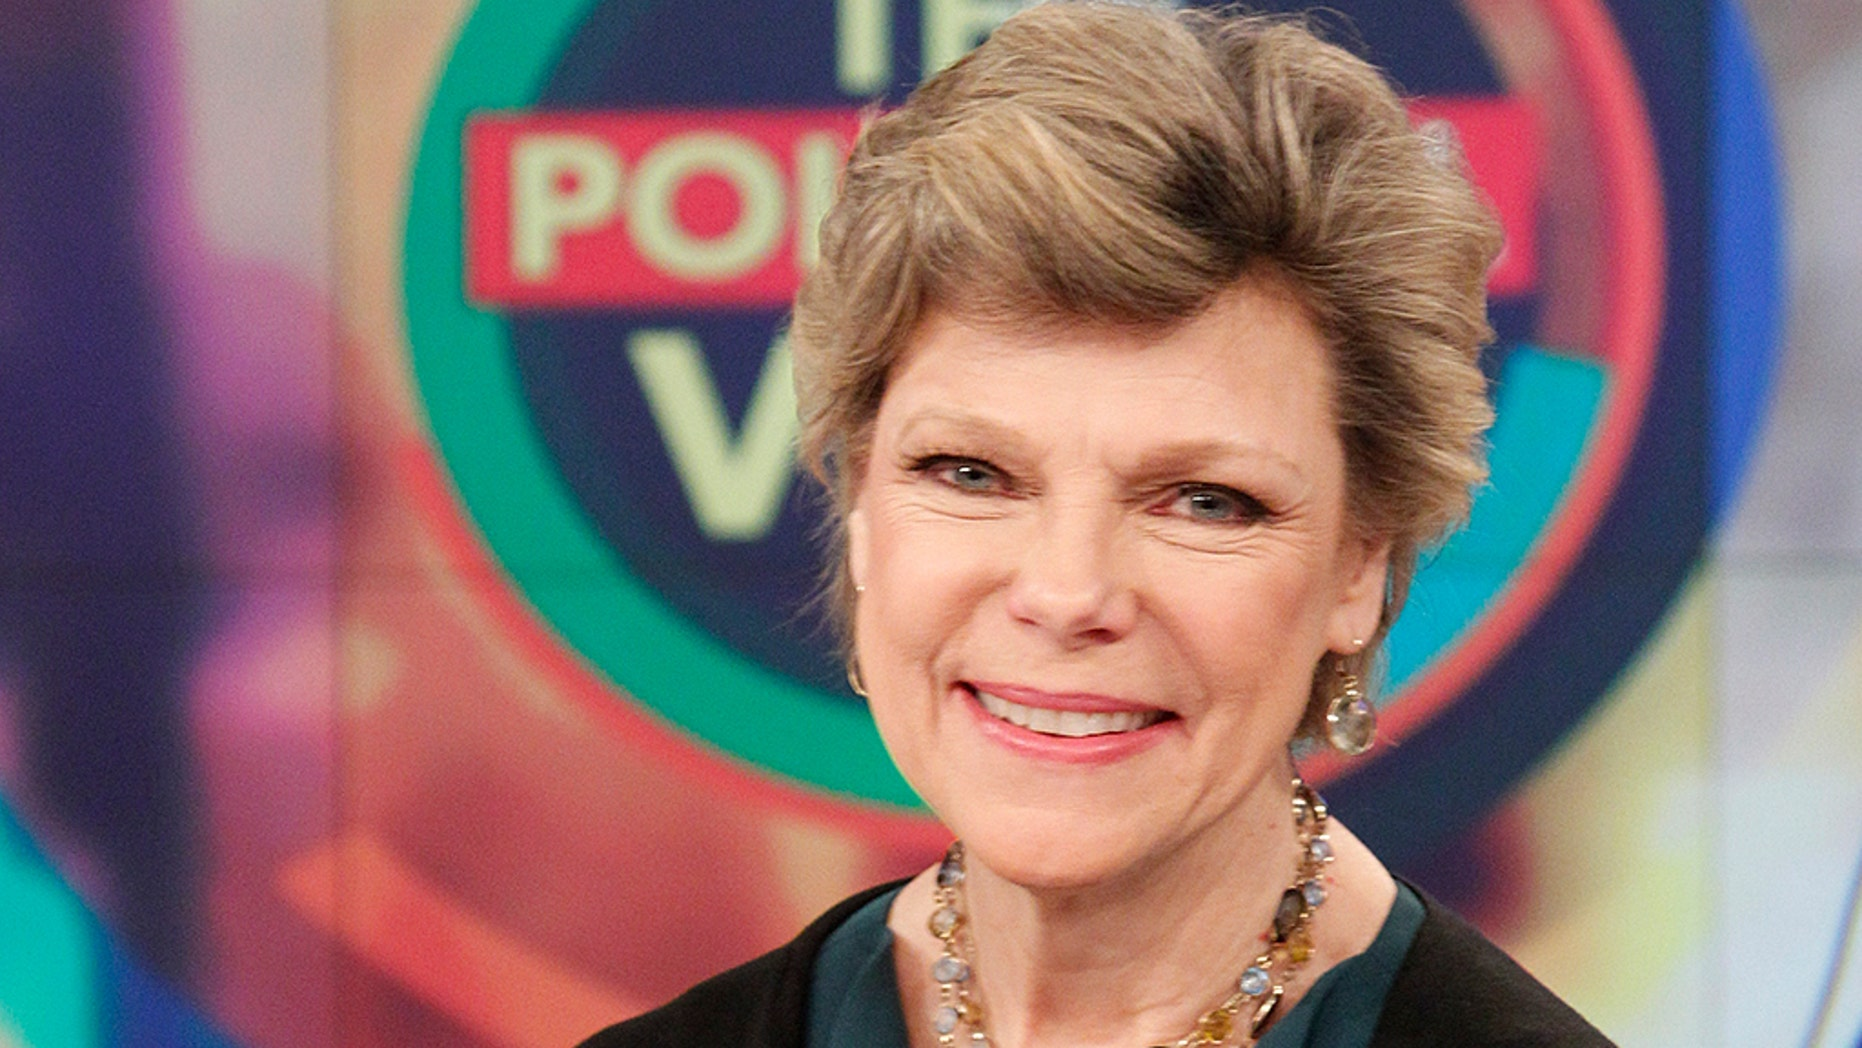 Cokie Roberts, renowned United States political journalist, dies at 75